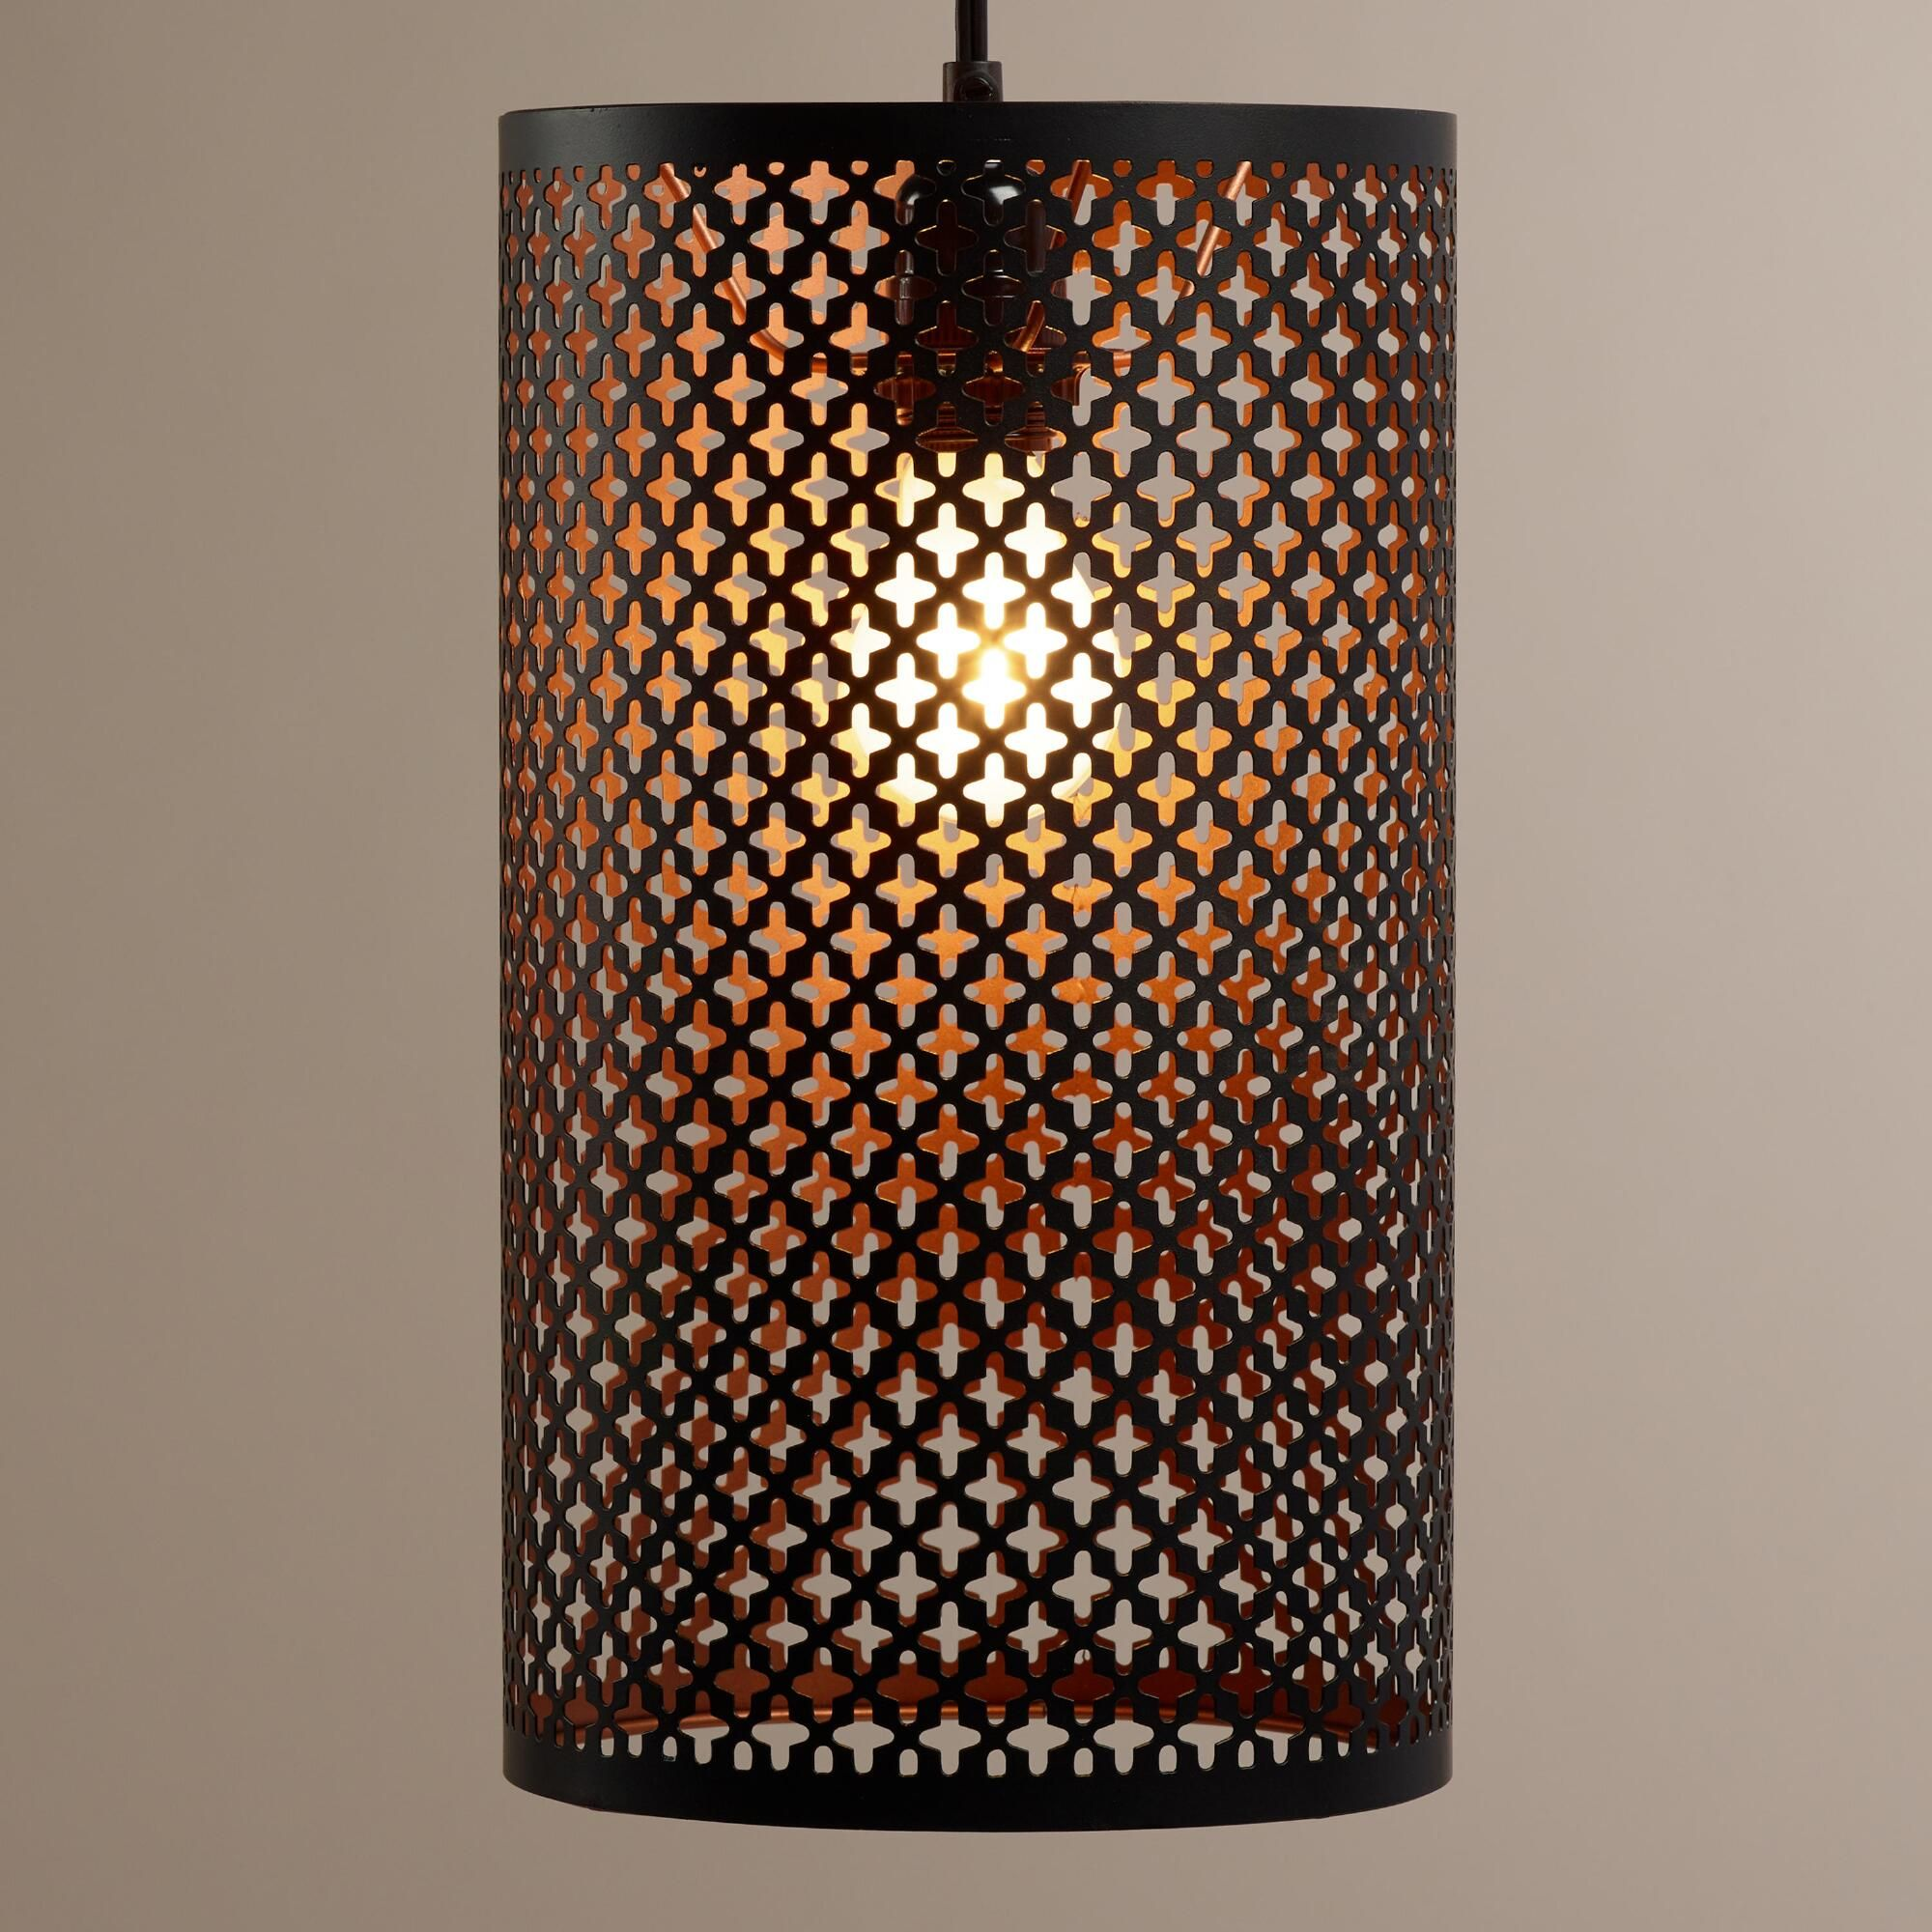 b square cylinder pendant all woodgate product marble terence lighting light black buy the solid